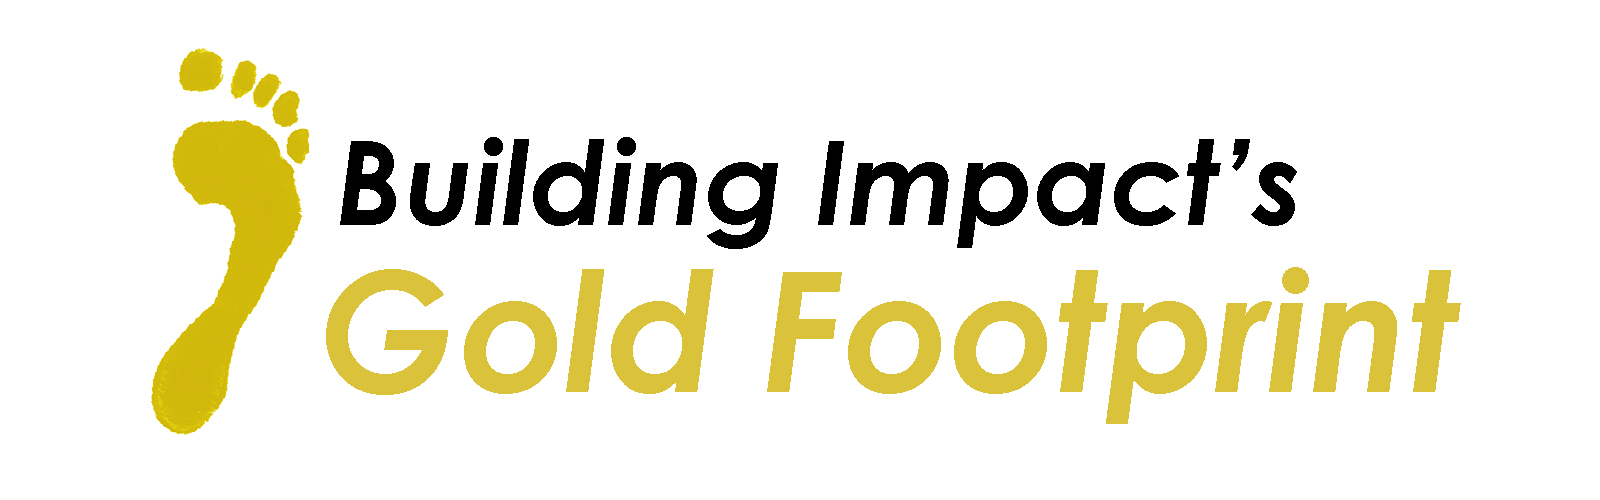 Gold Footprint 2011